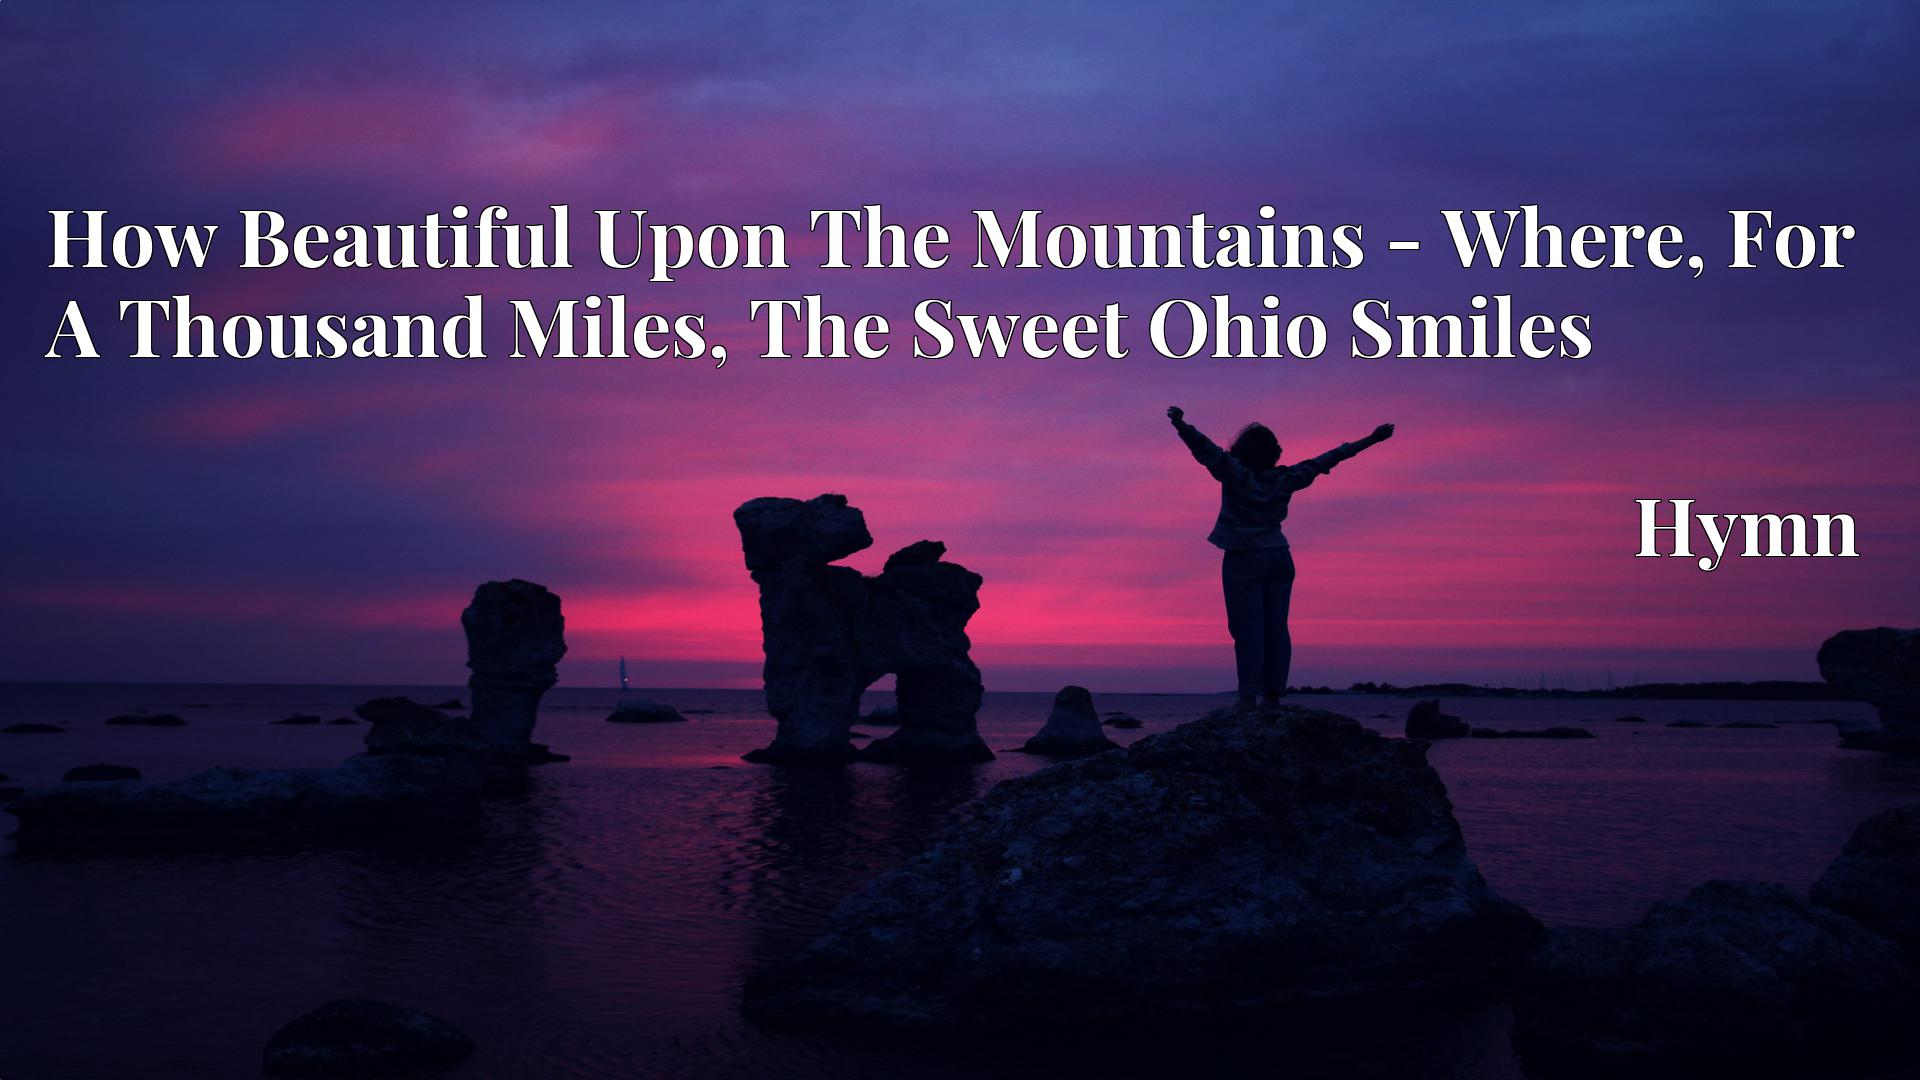 How Beautiful Upon The Mountains - Where, For A Thousand Miles, The Sweet Ohio Smiles - Hymn